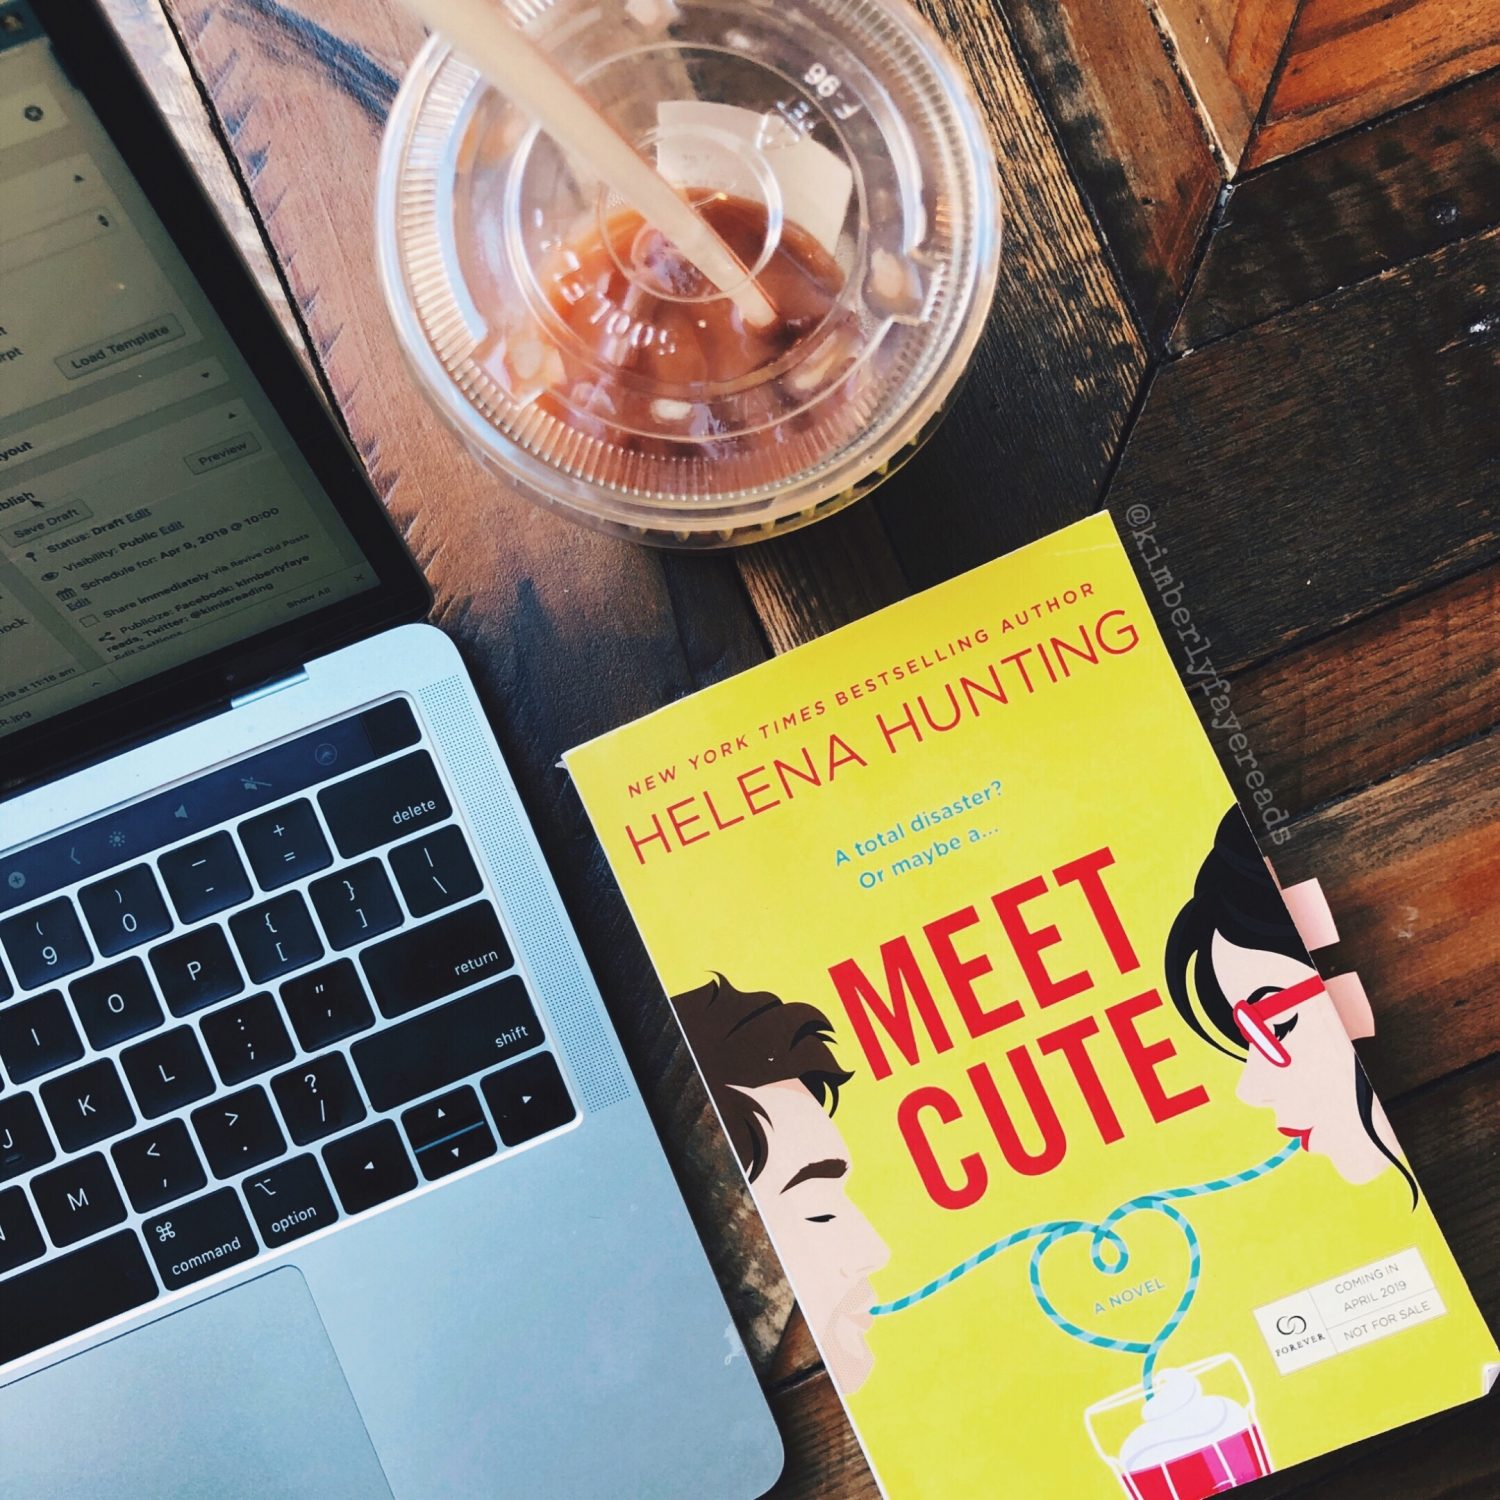 In Review: Meet Cute by Helena Hunting